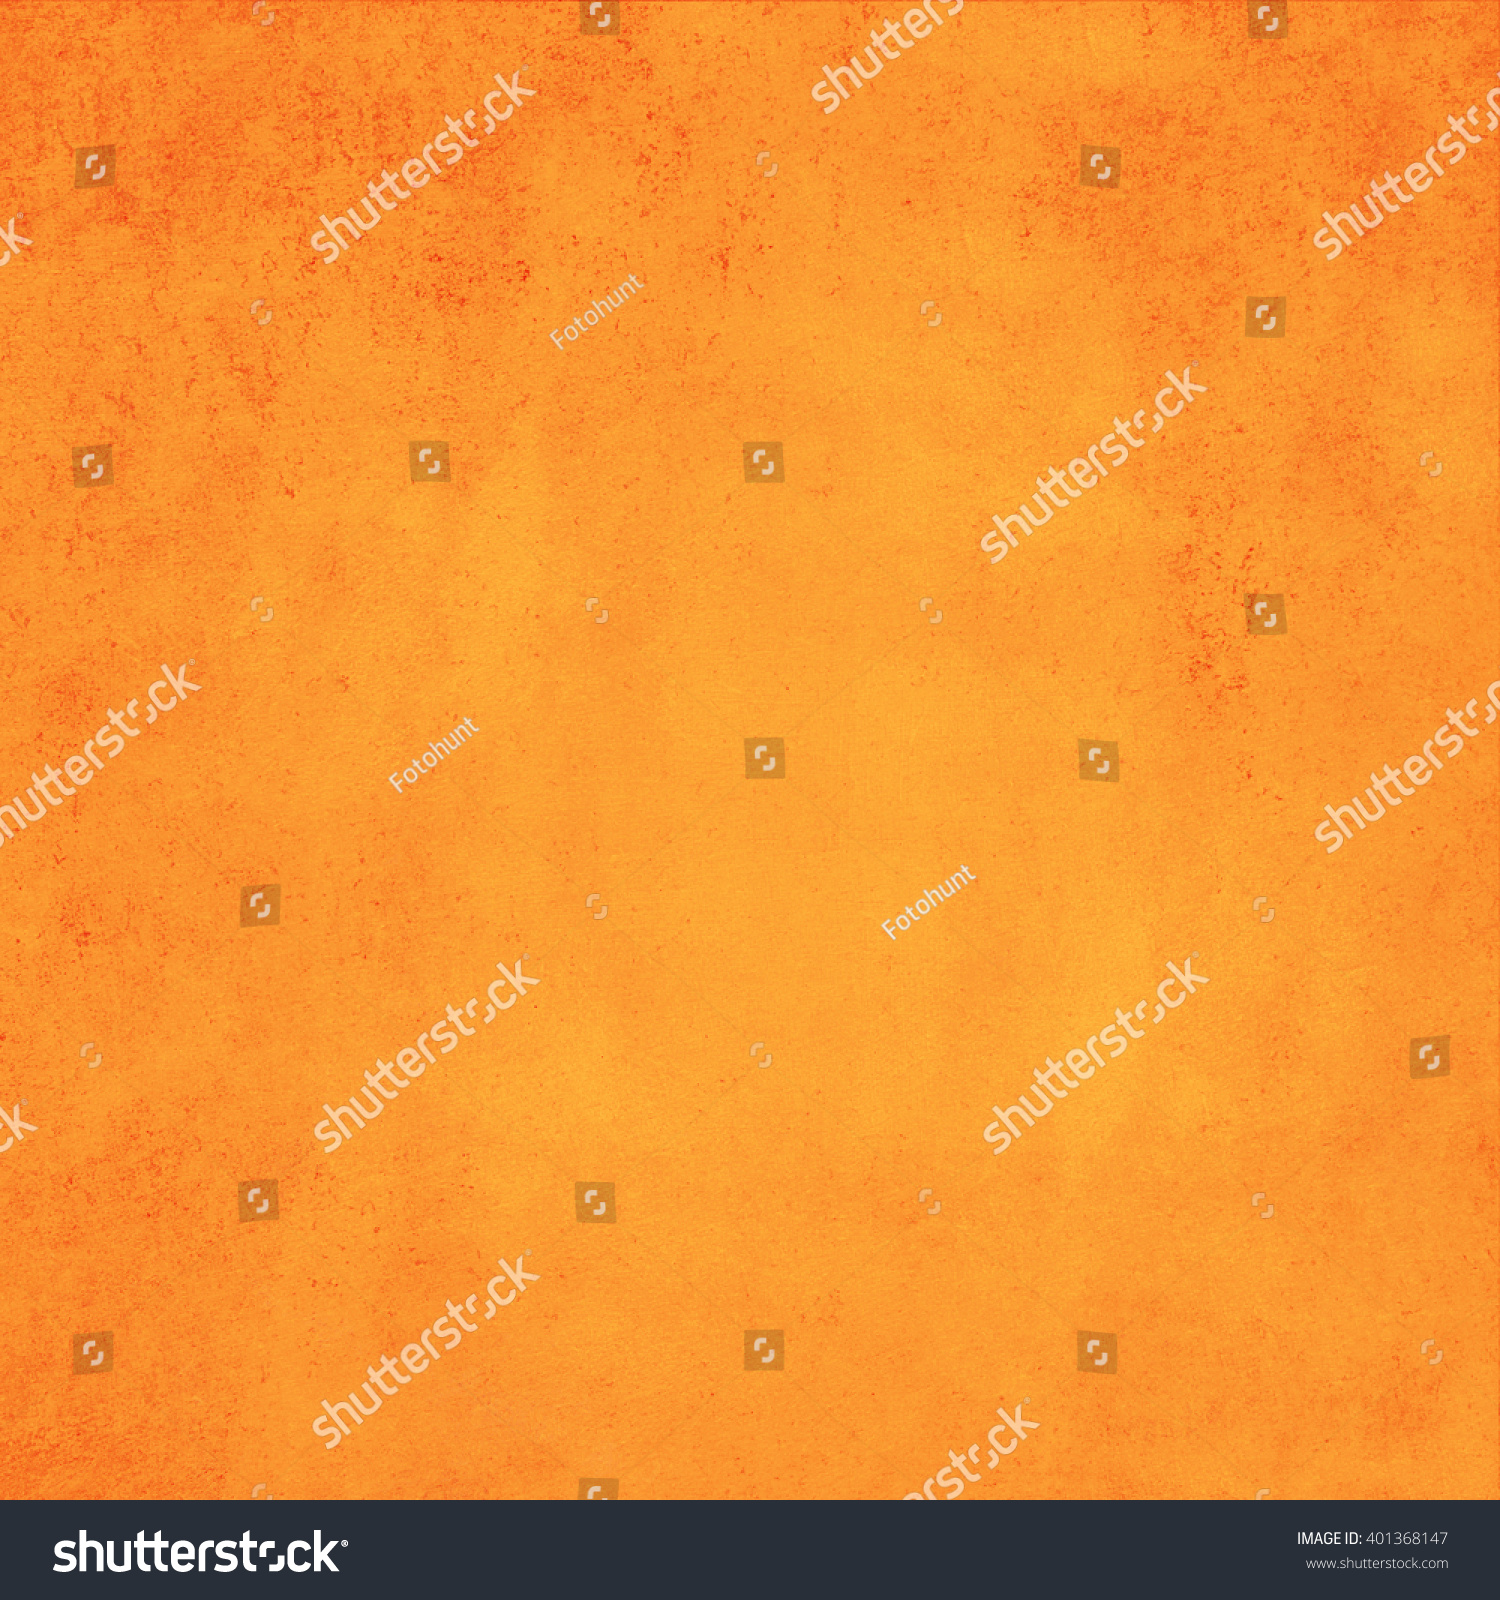 Orange Cement Wall : Abstract orange background texture concrete wall stock